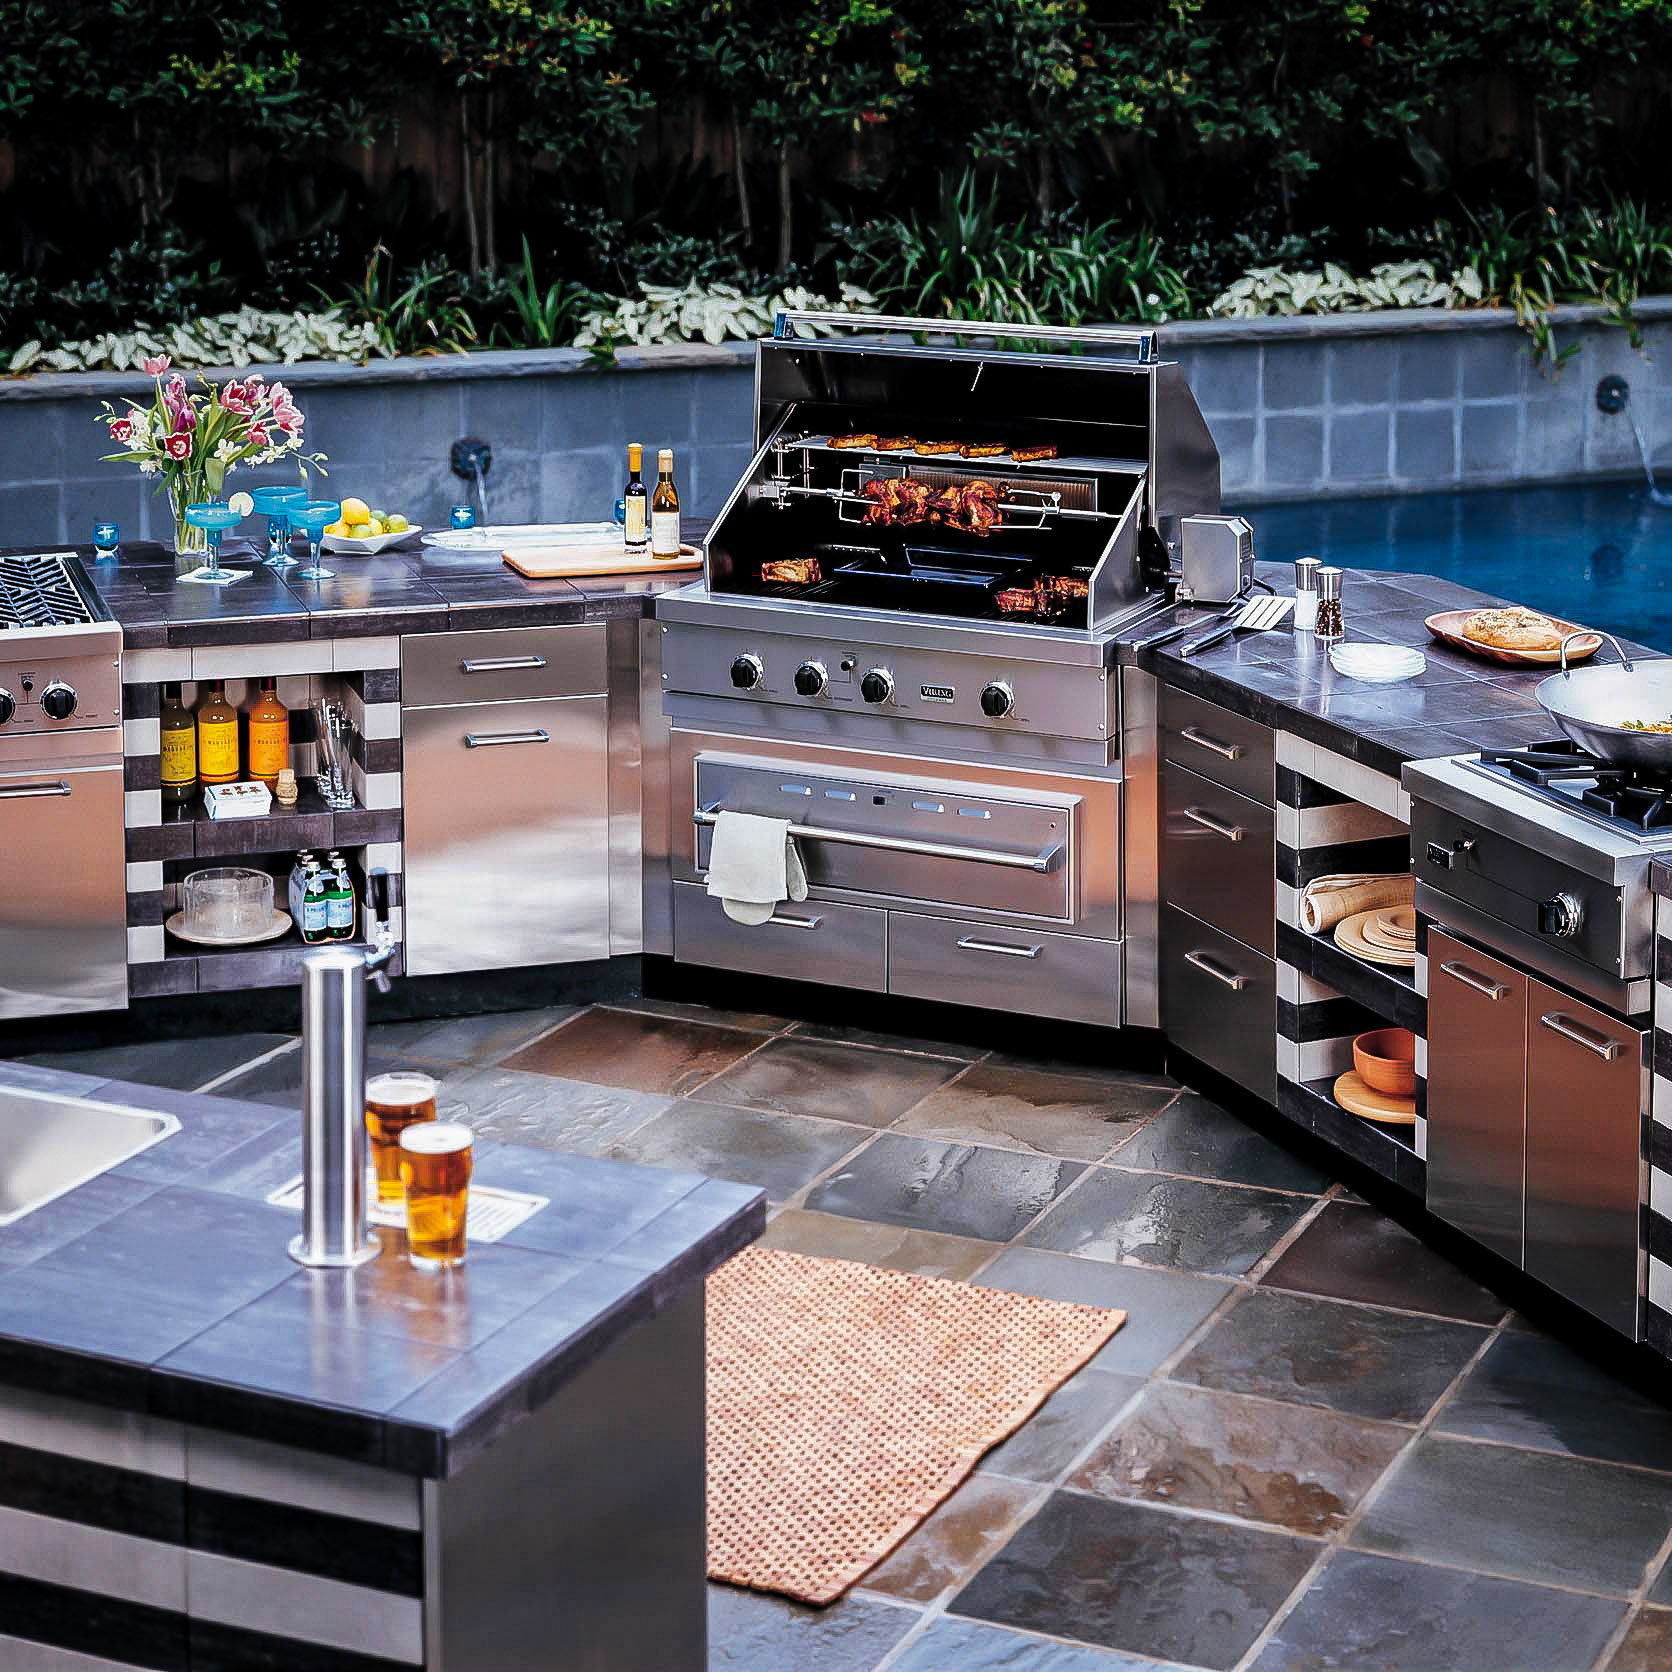 Luxury Outdoor Patio with Fully Equipped Exterior Kitchen Complete with Gas Grill